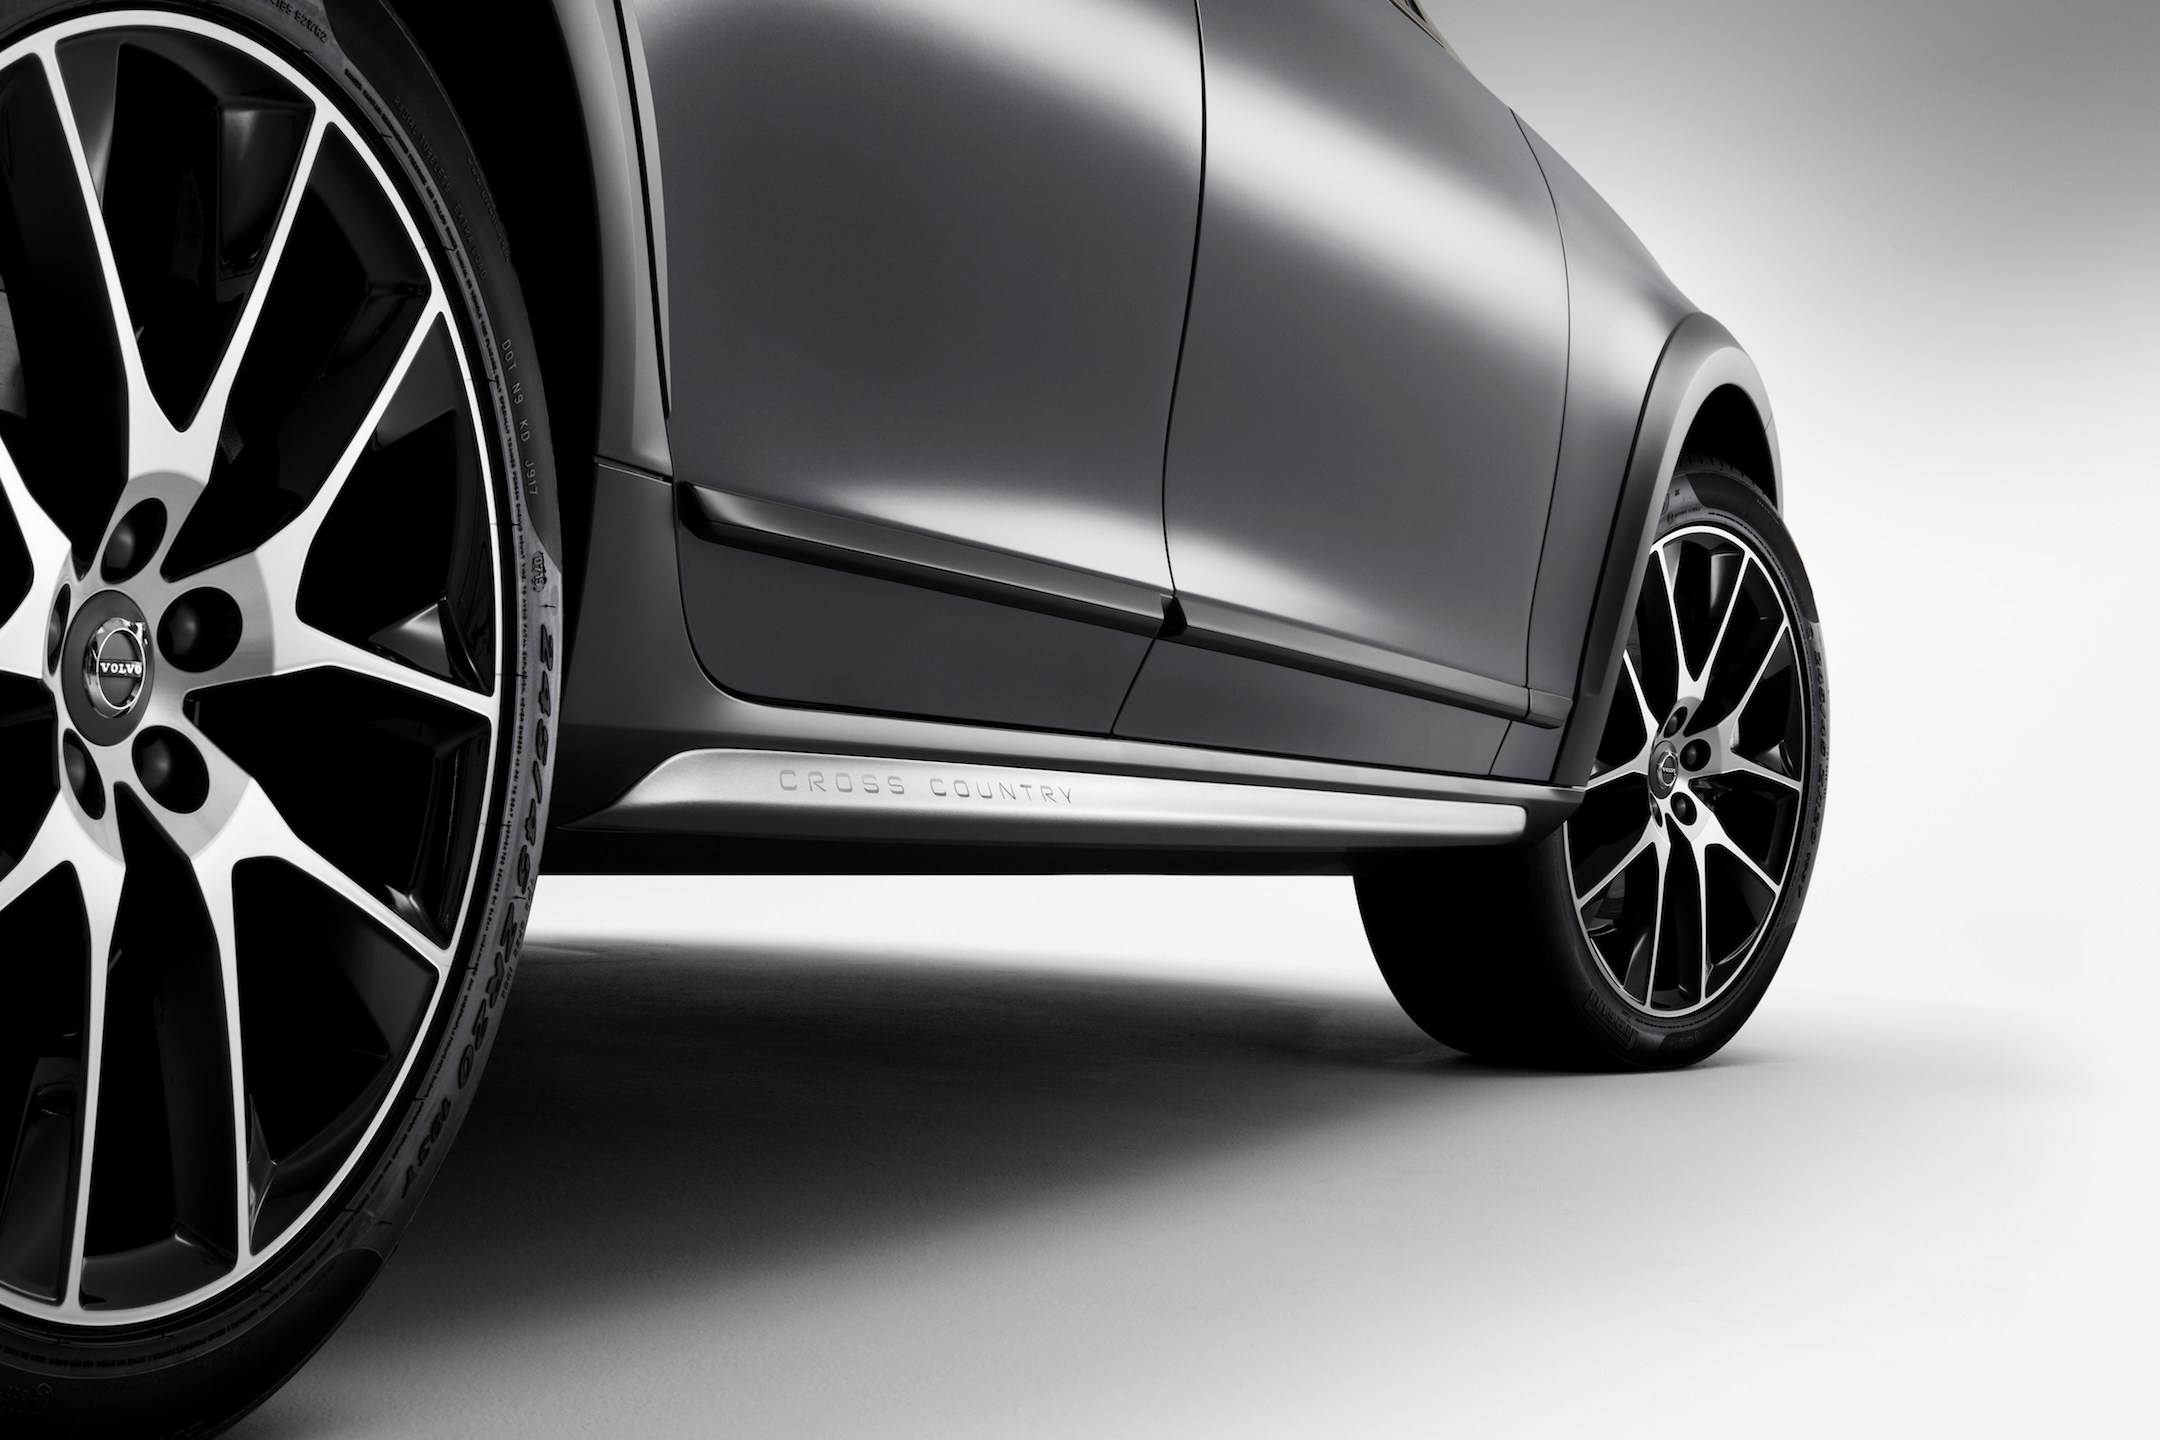 New Volvo V90 Cross Country Studio detail